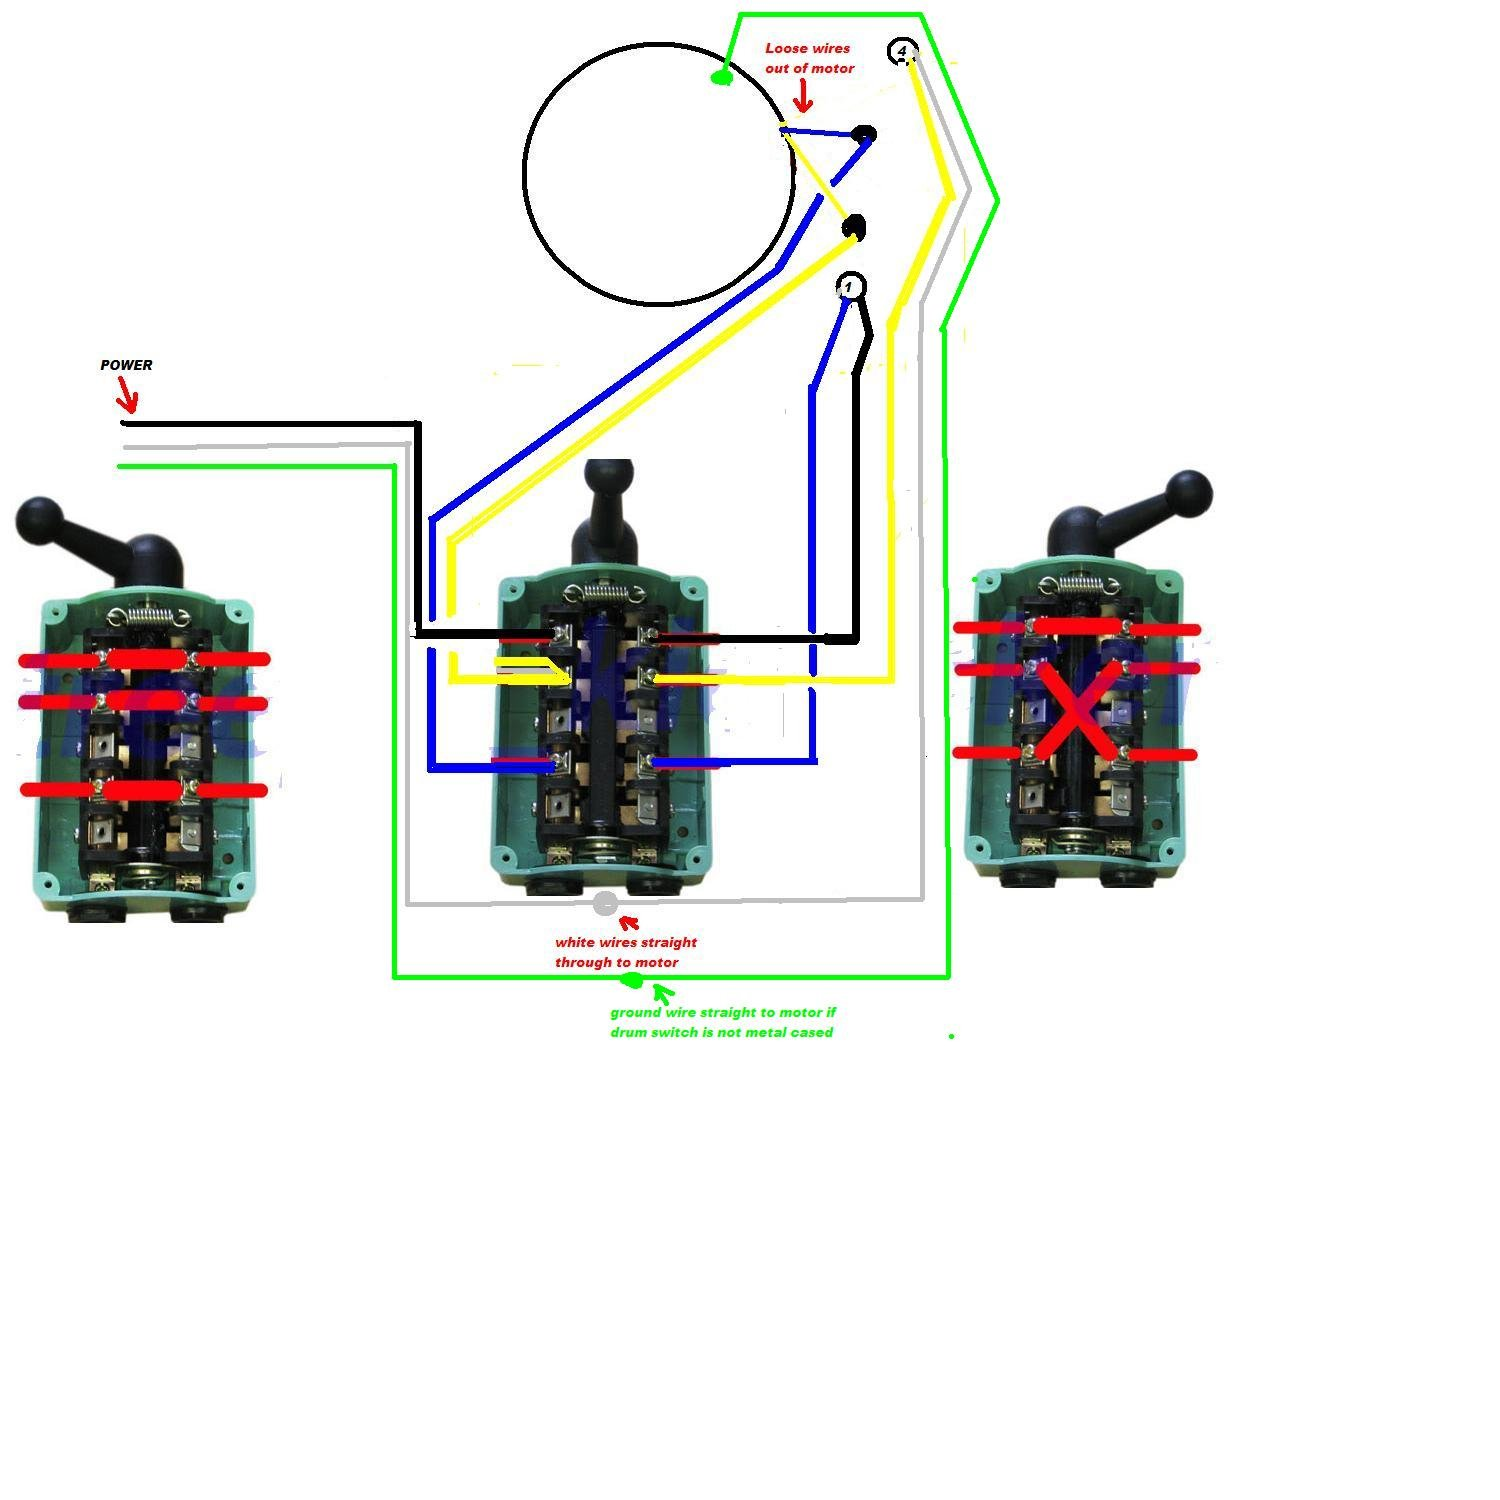 need help wiring a 60 amp drum switch forward/off/reverse ... dayton drum switch wiring diagram for electric motor merz drum switch wiring diagram #5